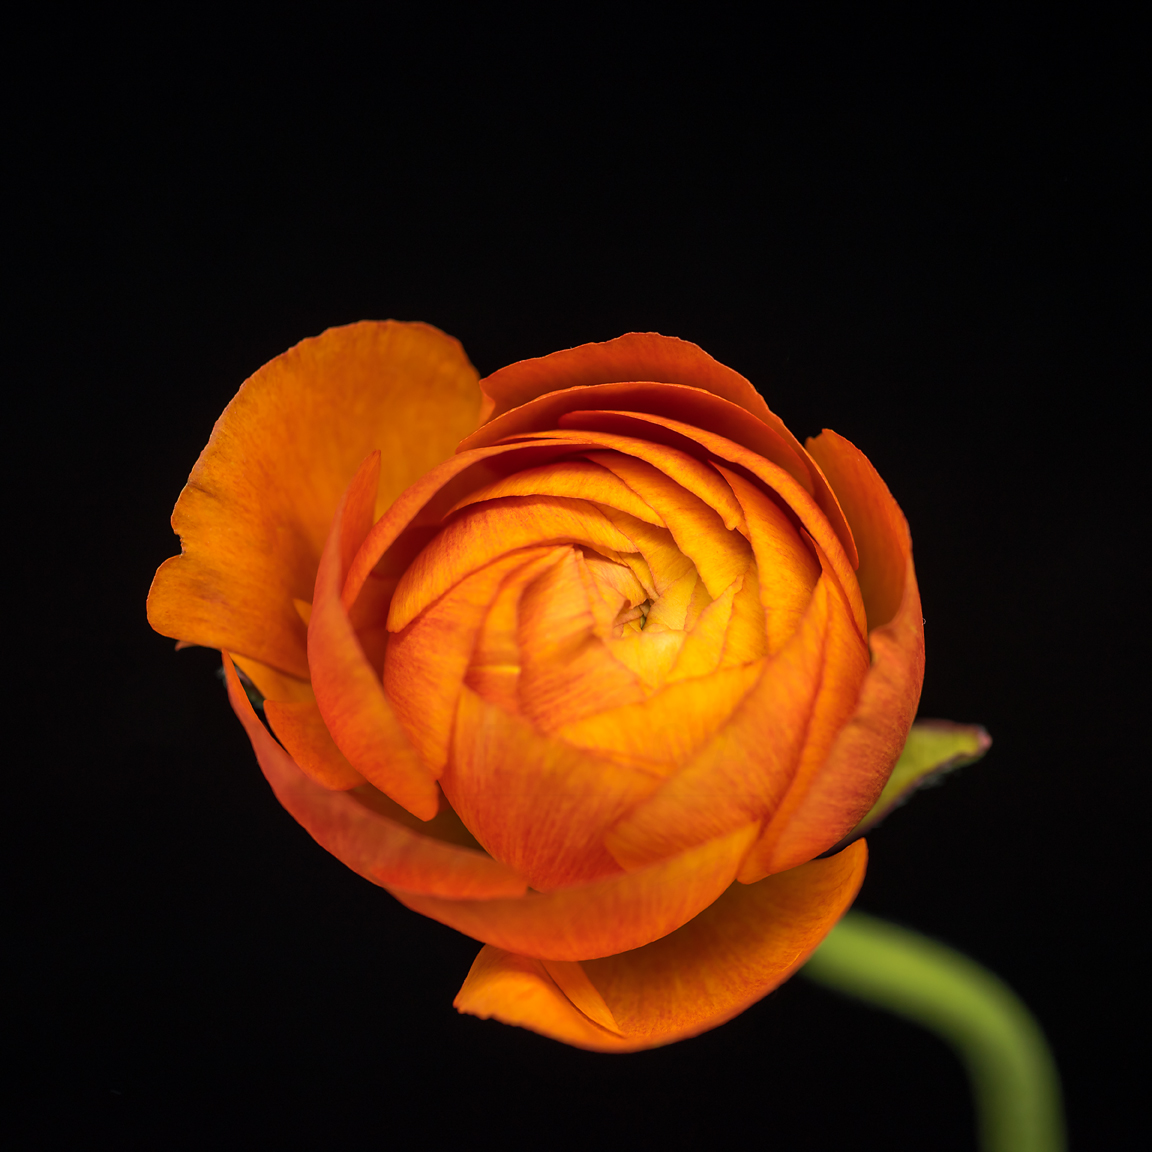 Photograph of a single orange ranunculus with a bright green stem by Tracey Capone